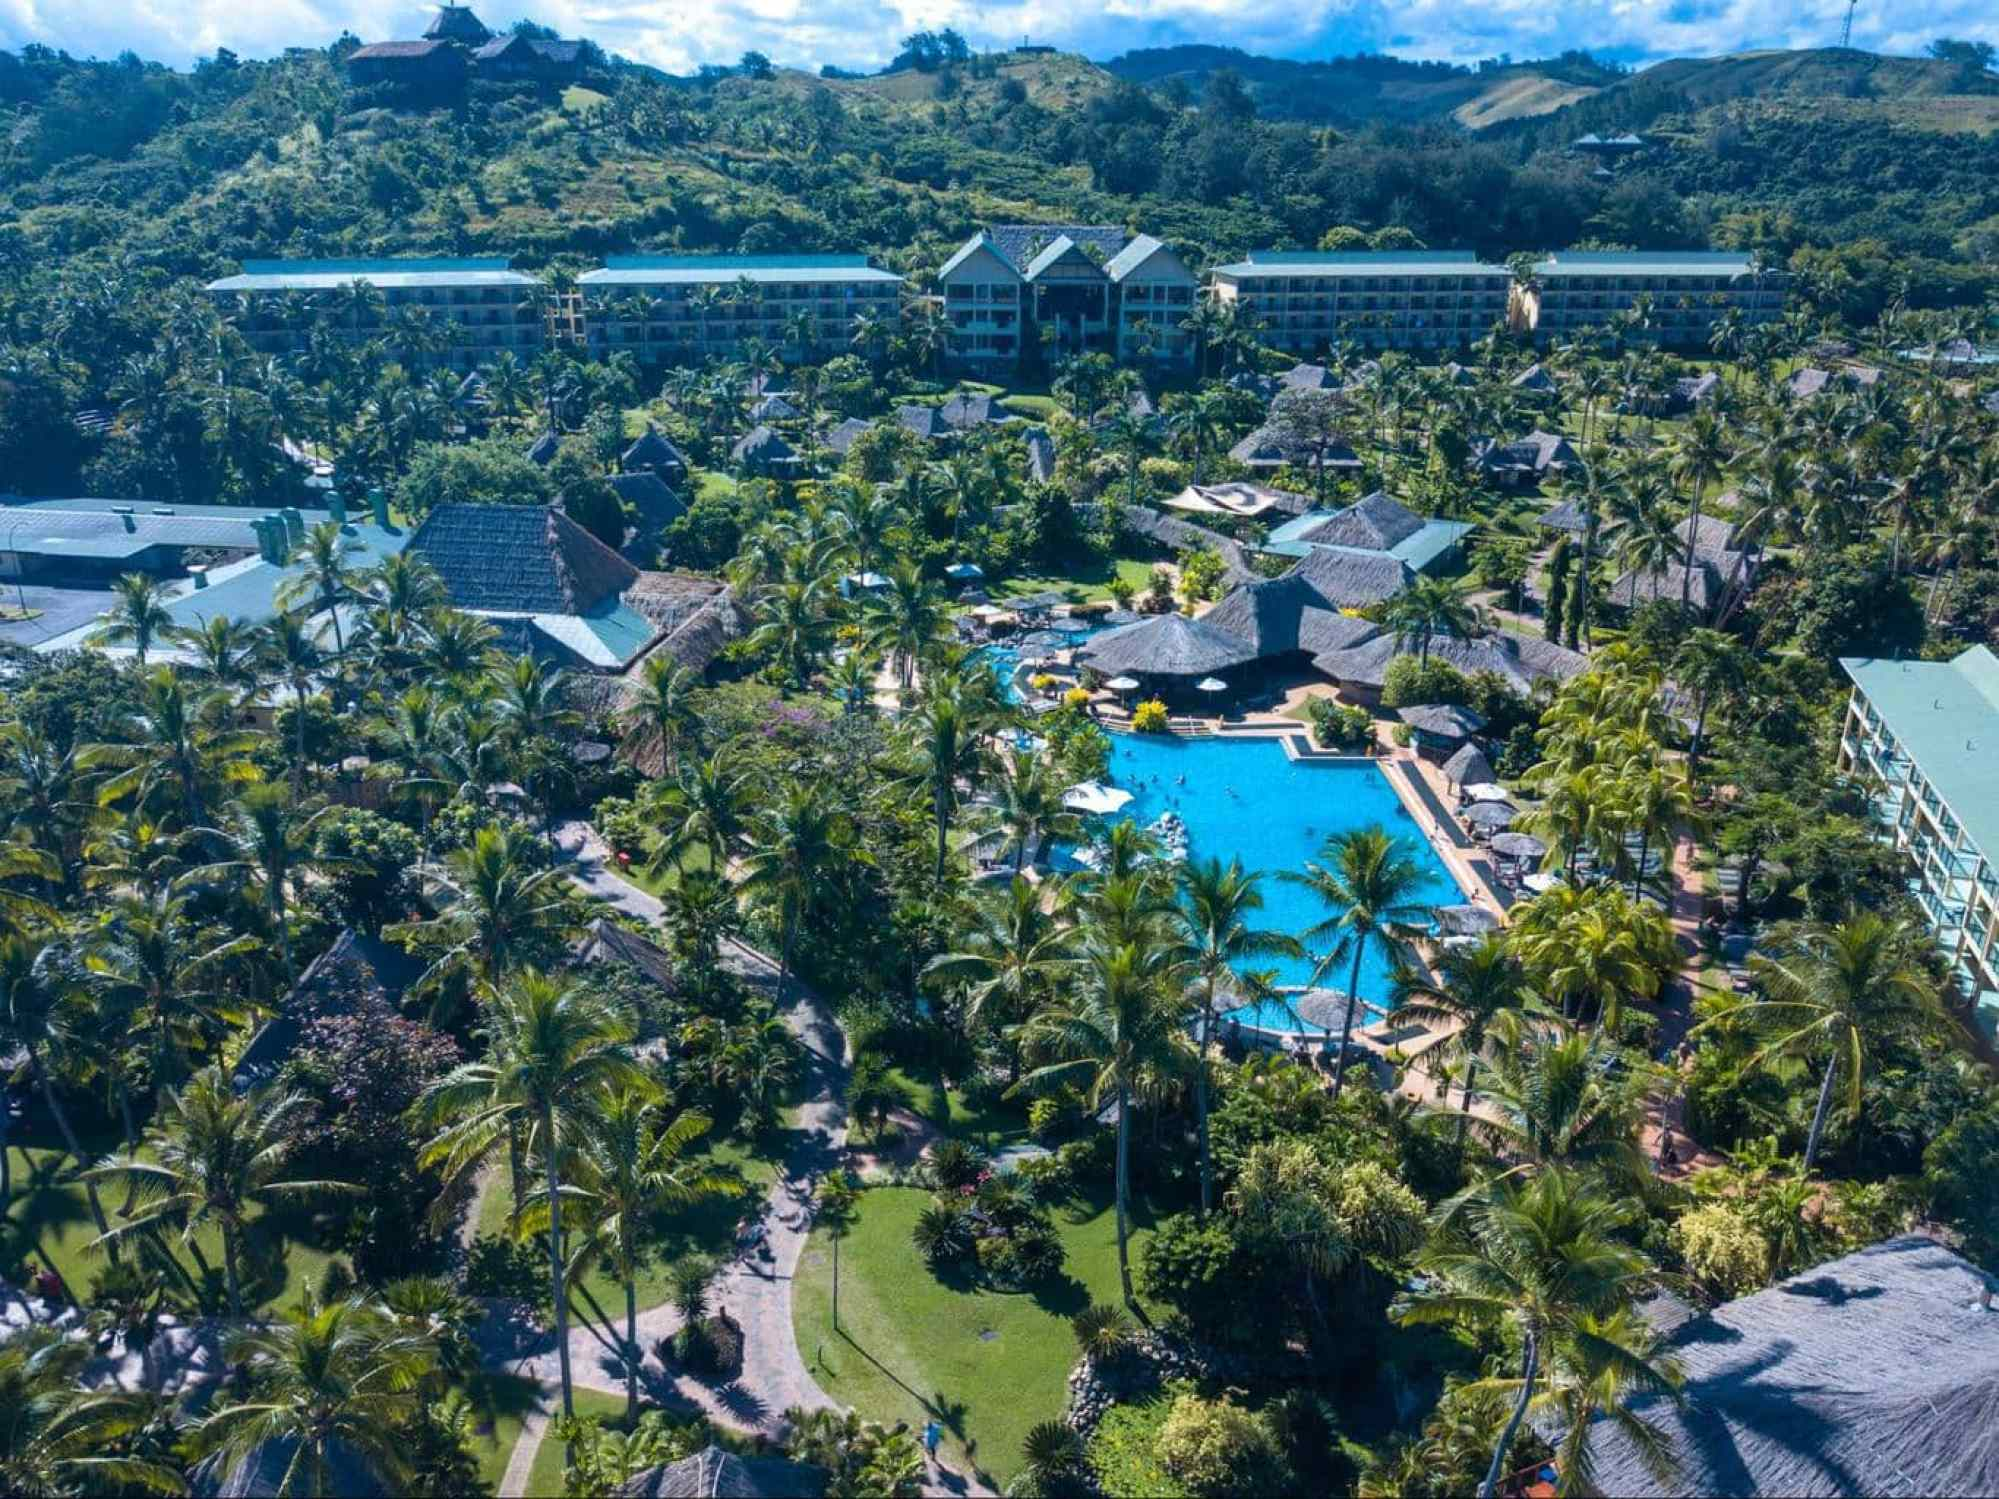 The main building and pool at Outrigger Fiji Beach Resort